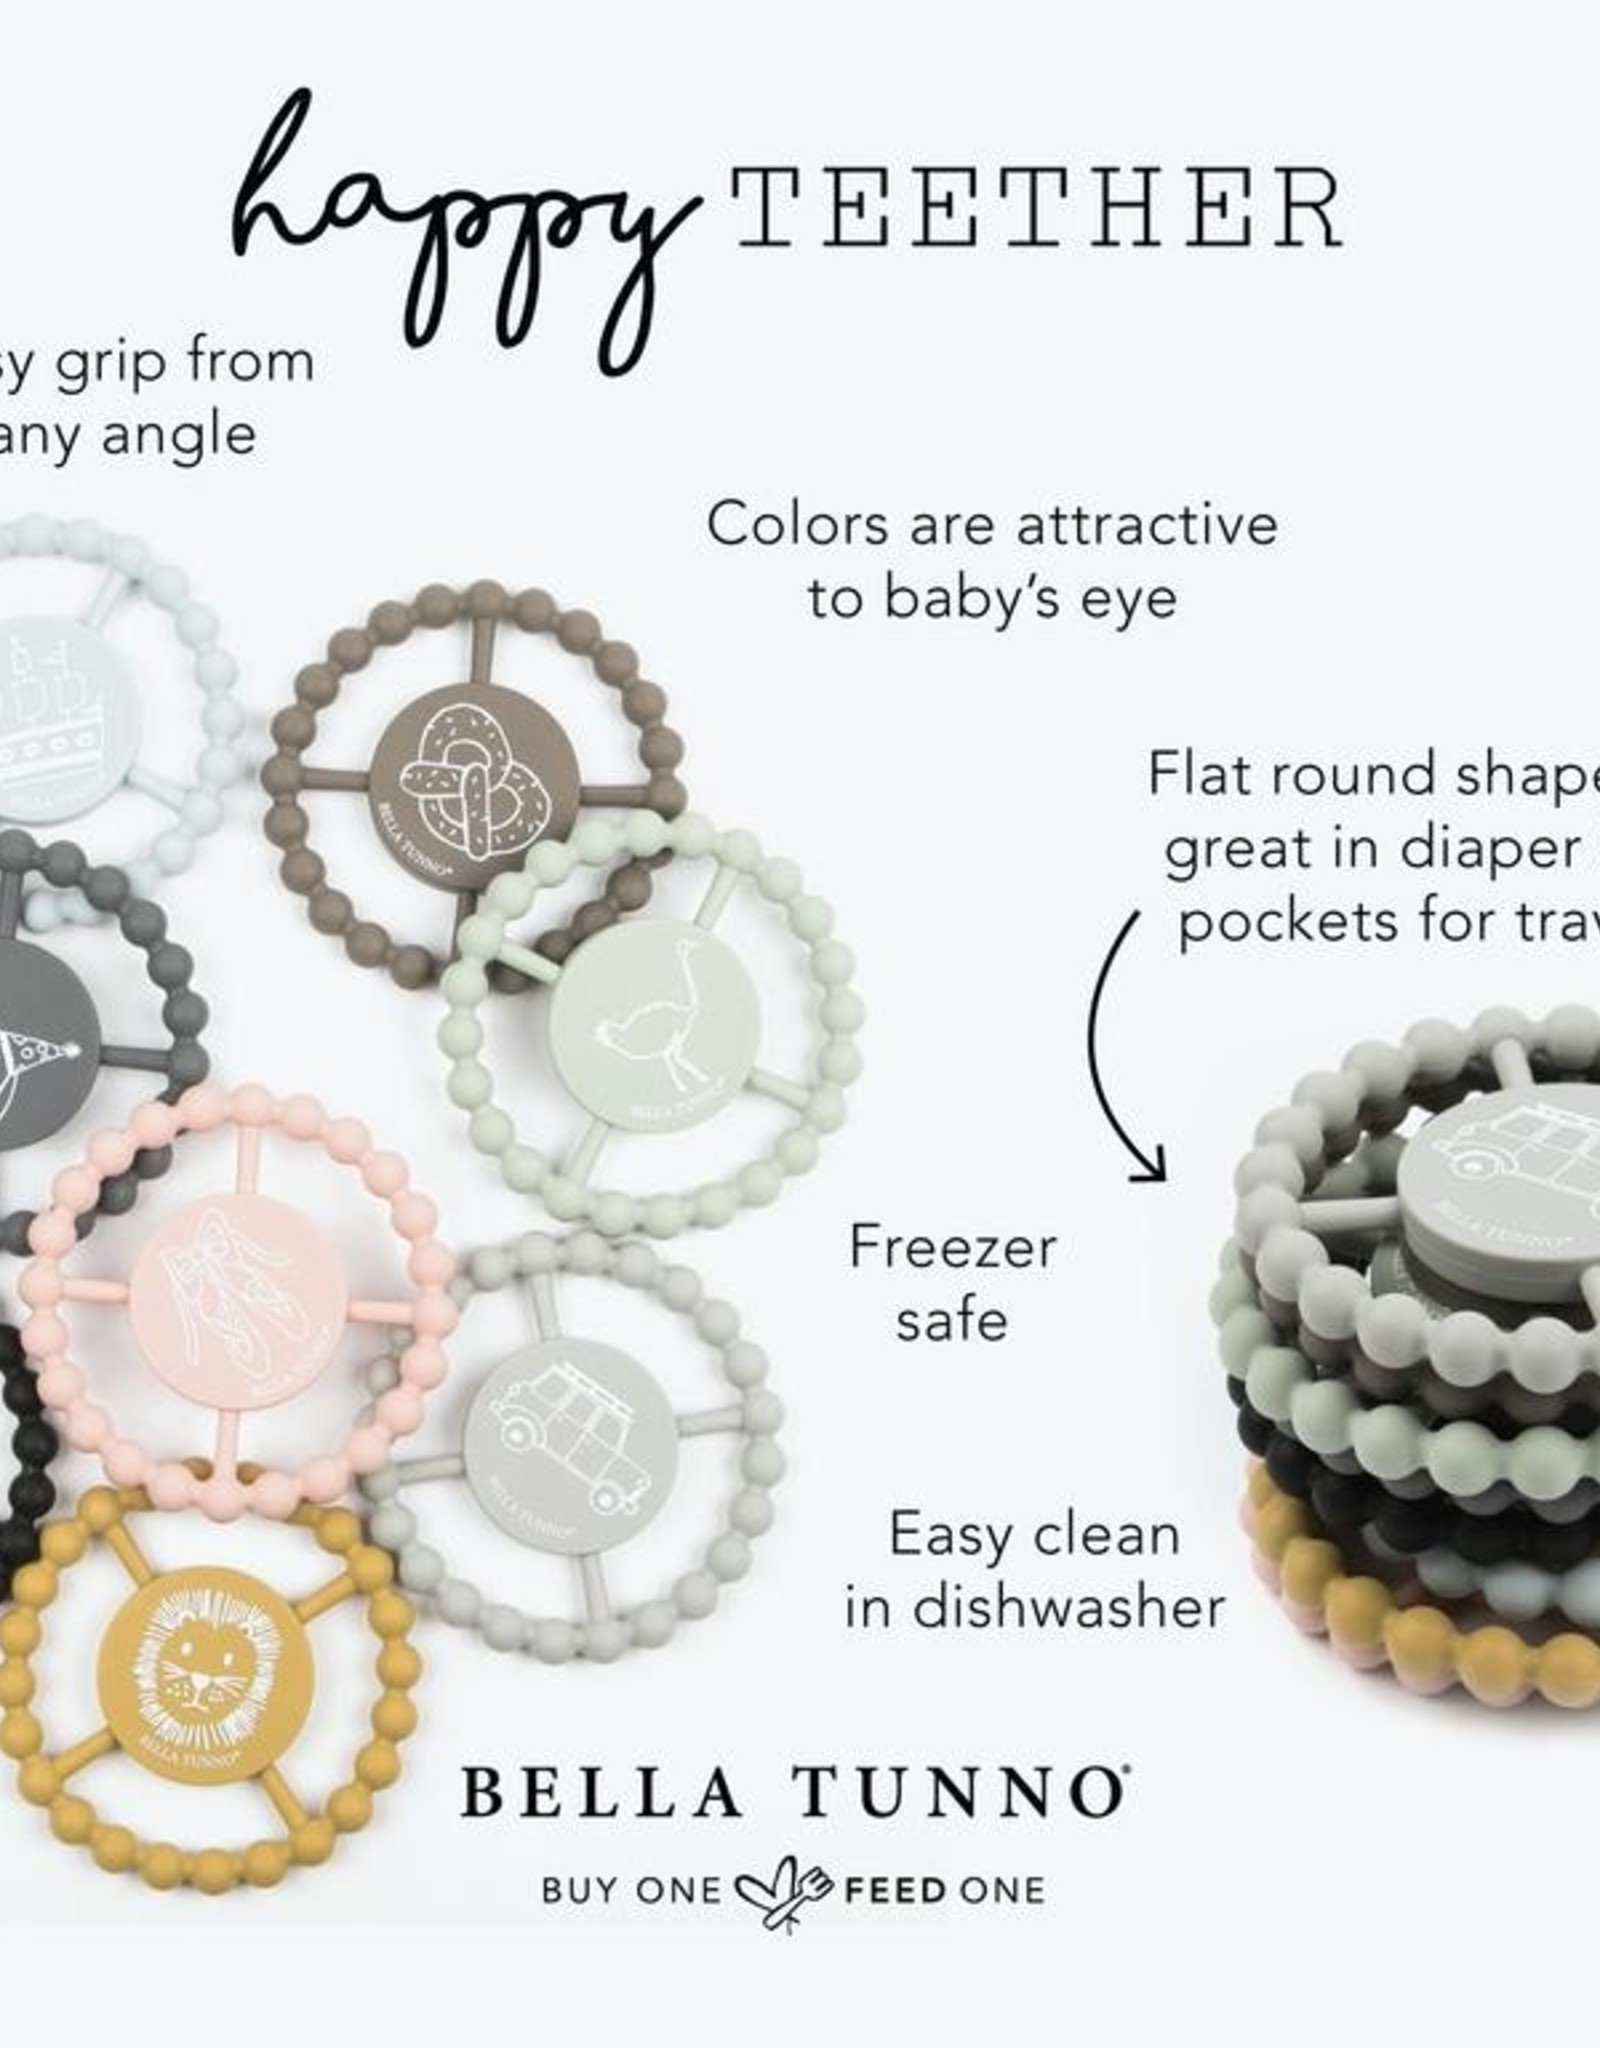 Bella Tunno Silicone Happy Teethers